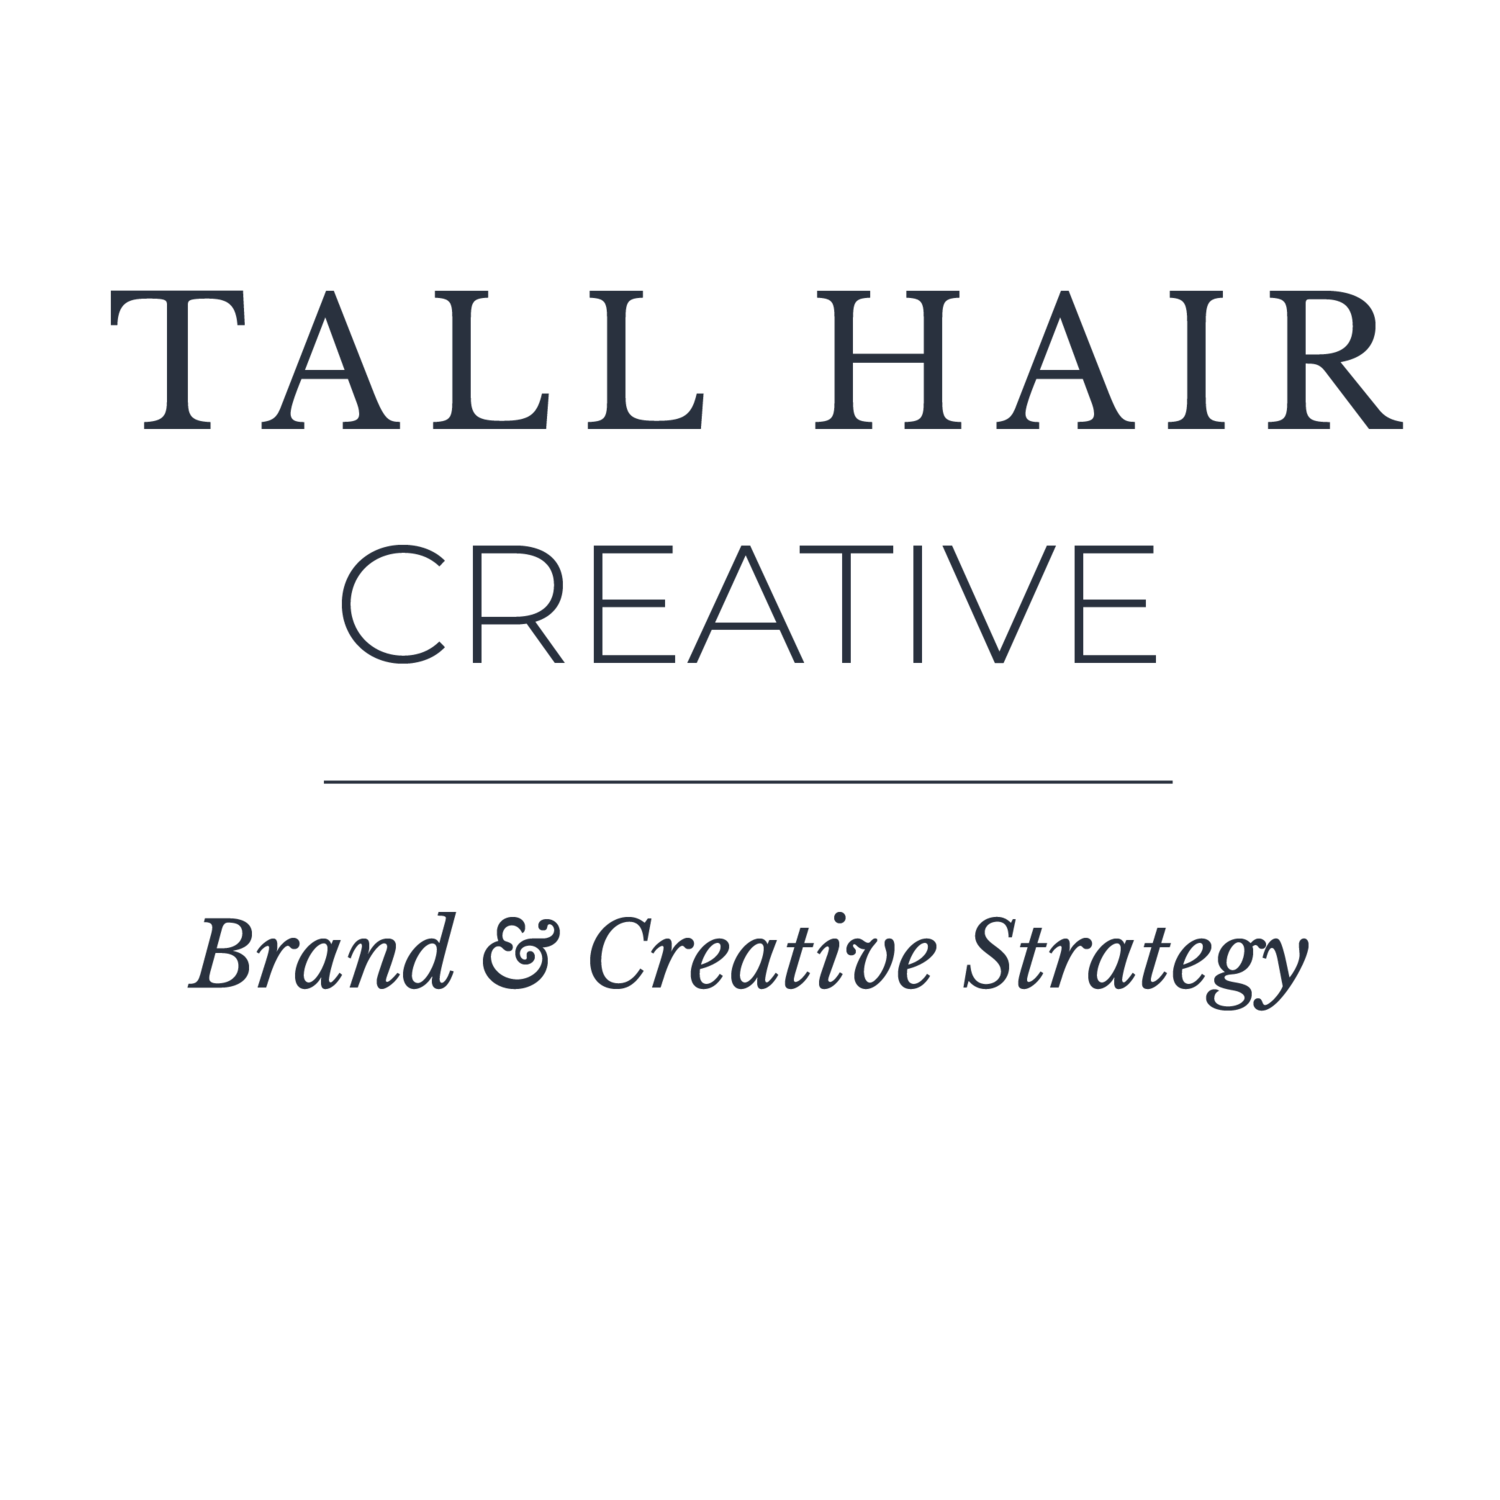 TALL HAIR CREATIVE